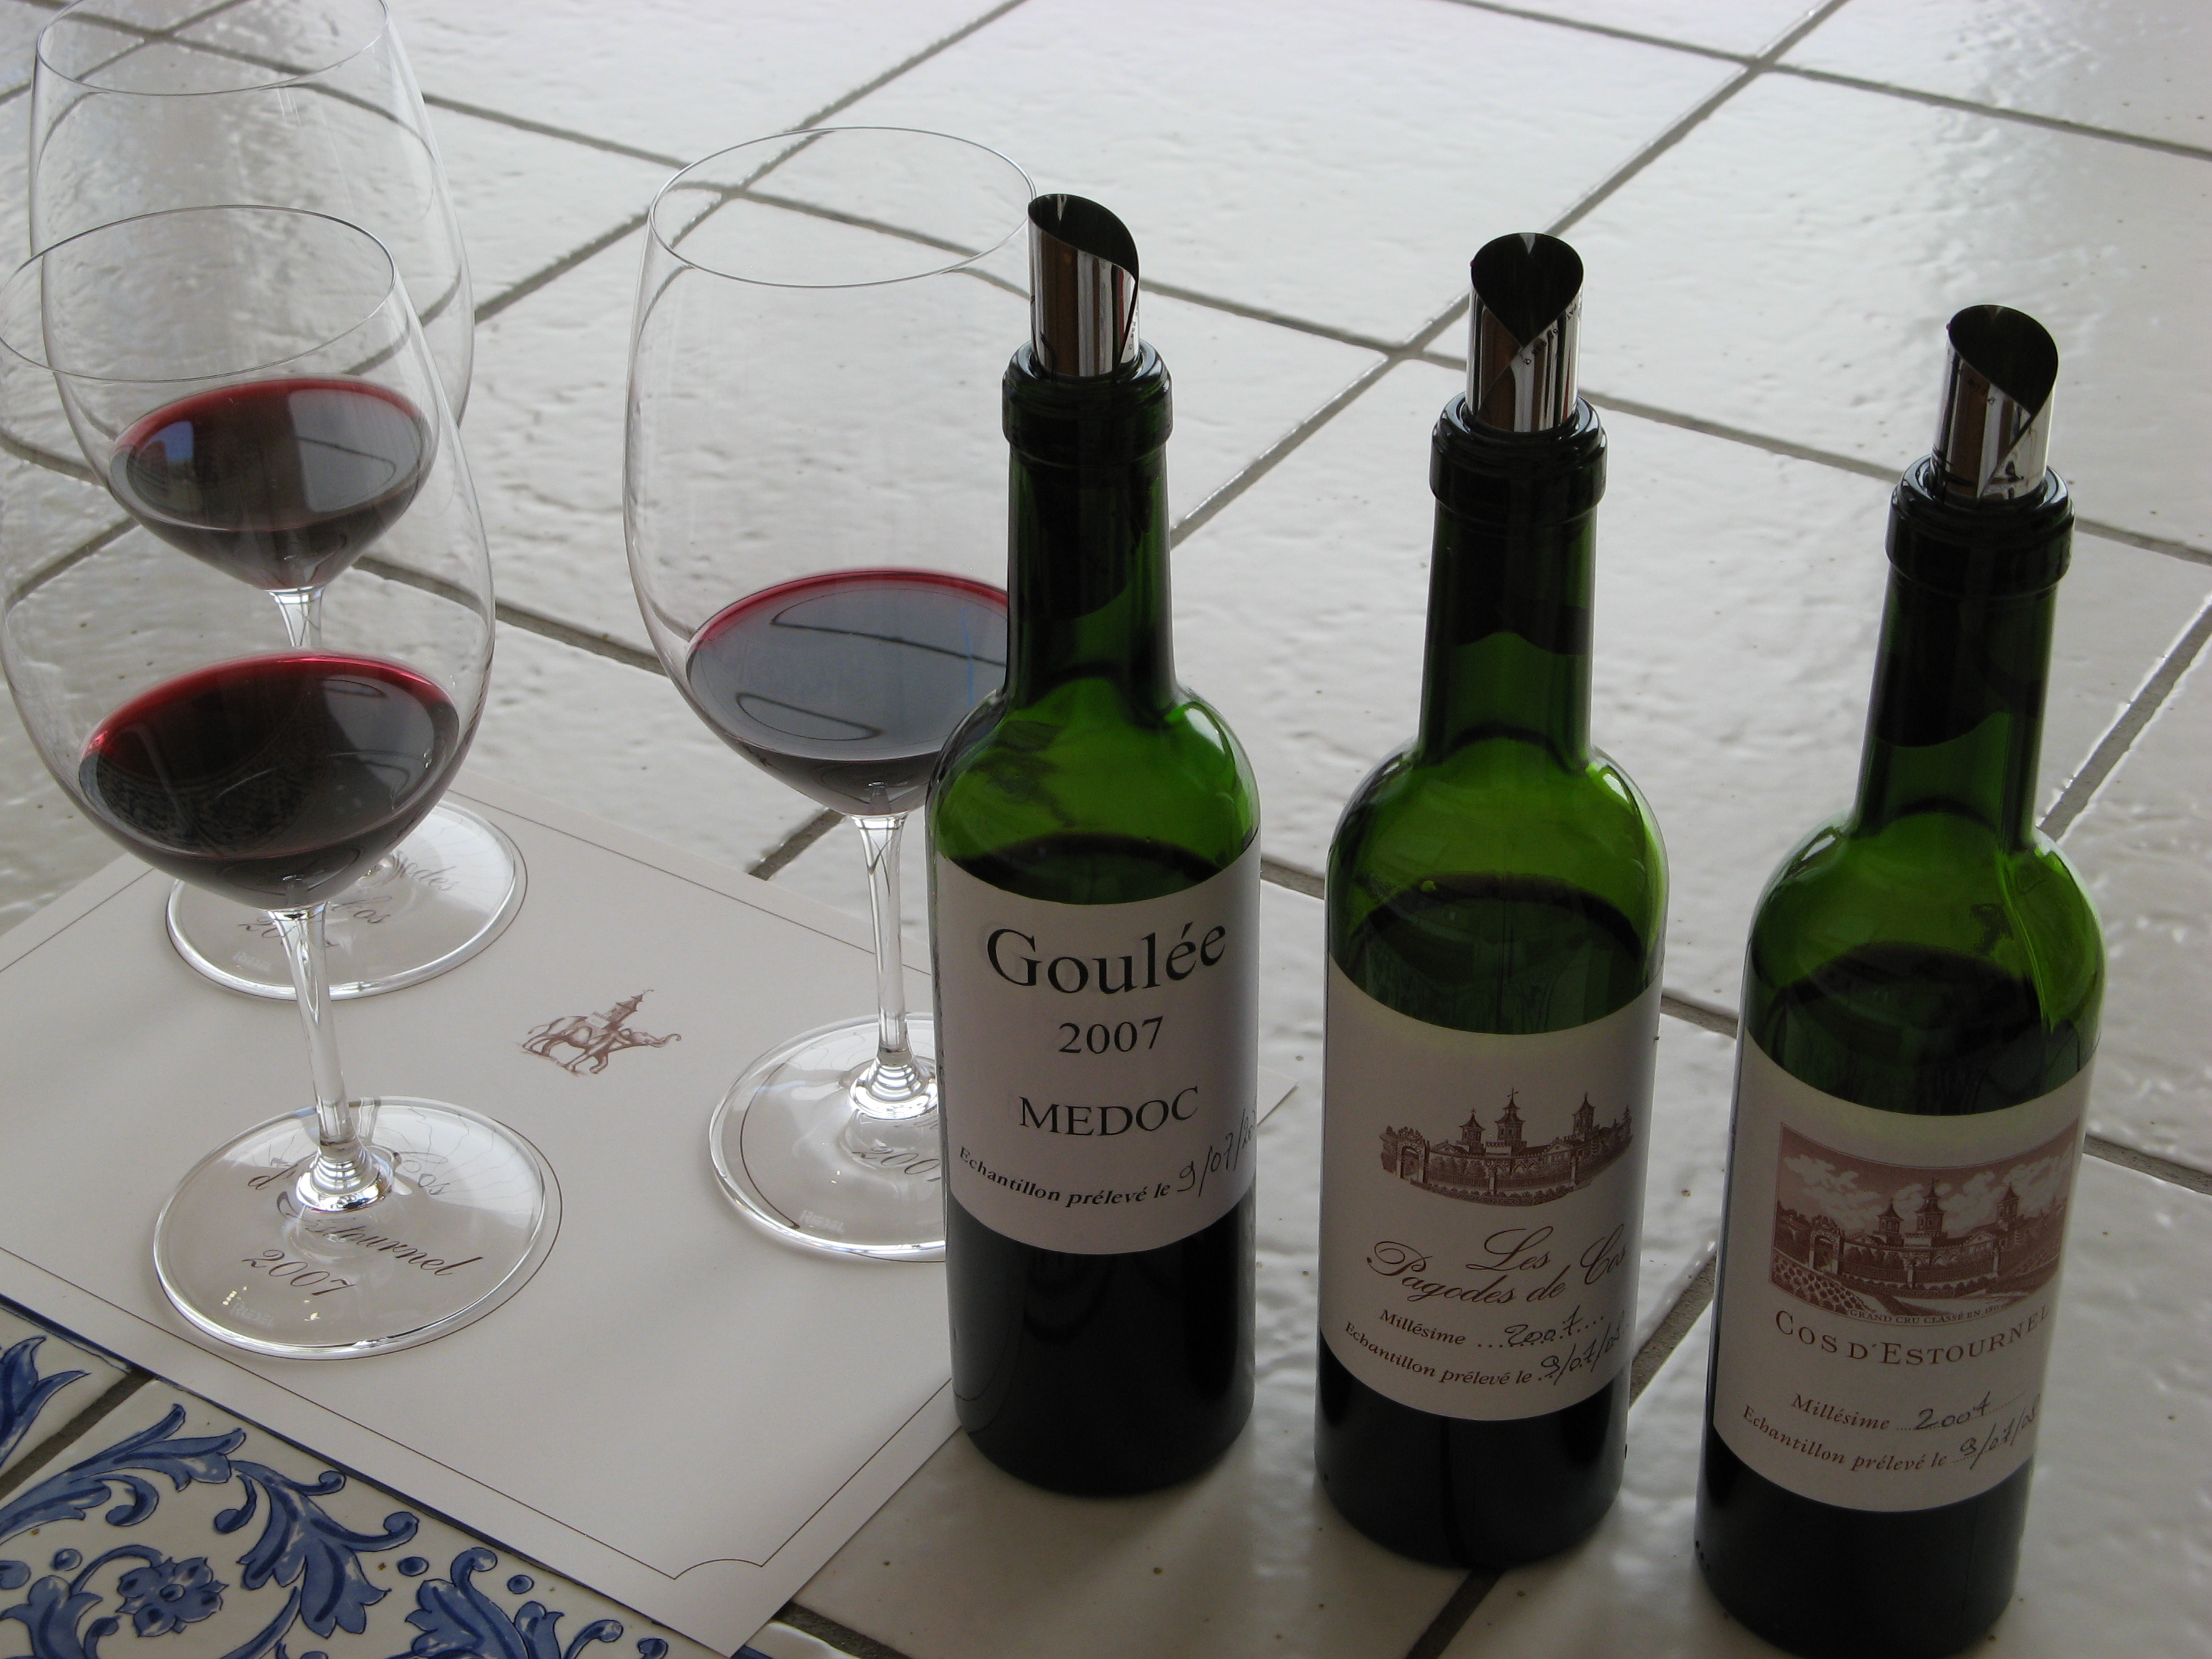 Wine appraisers often conduct professional wine assessments.